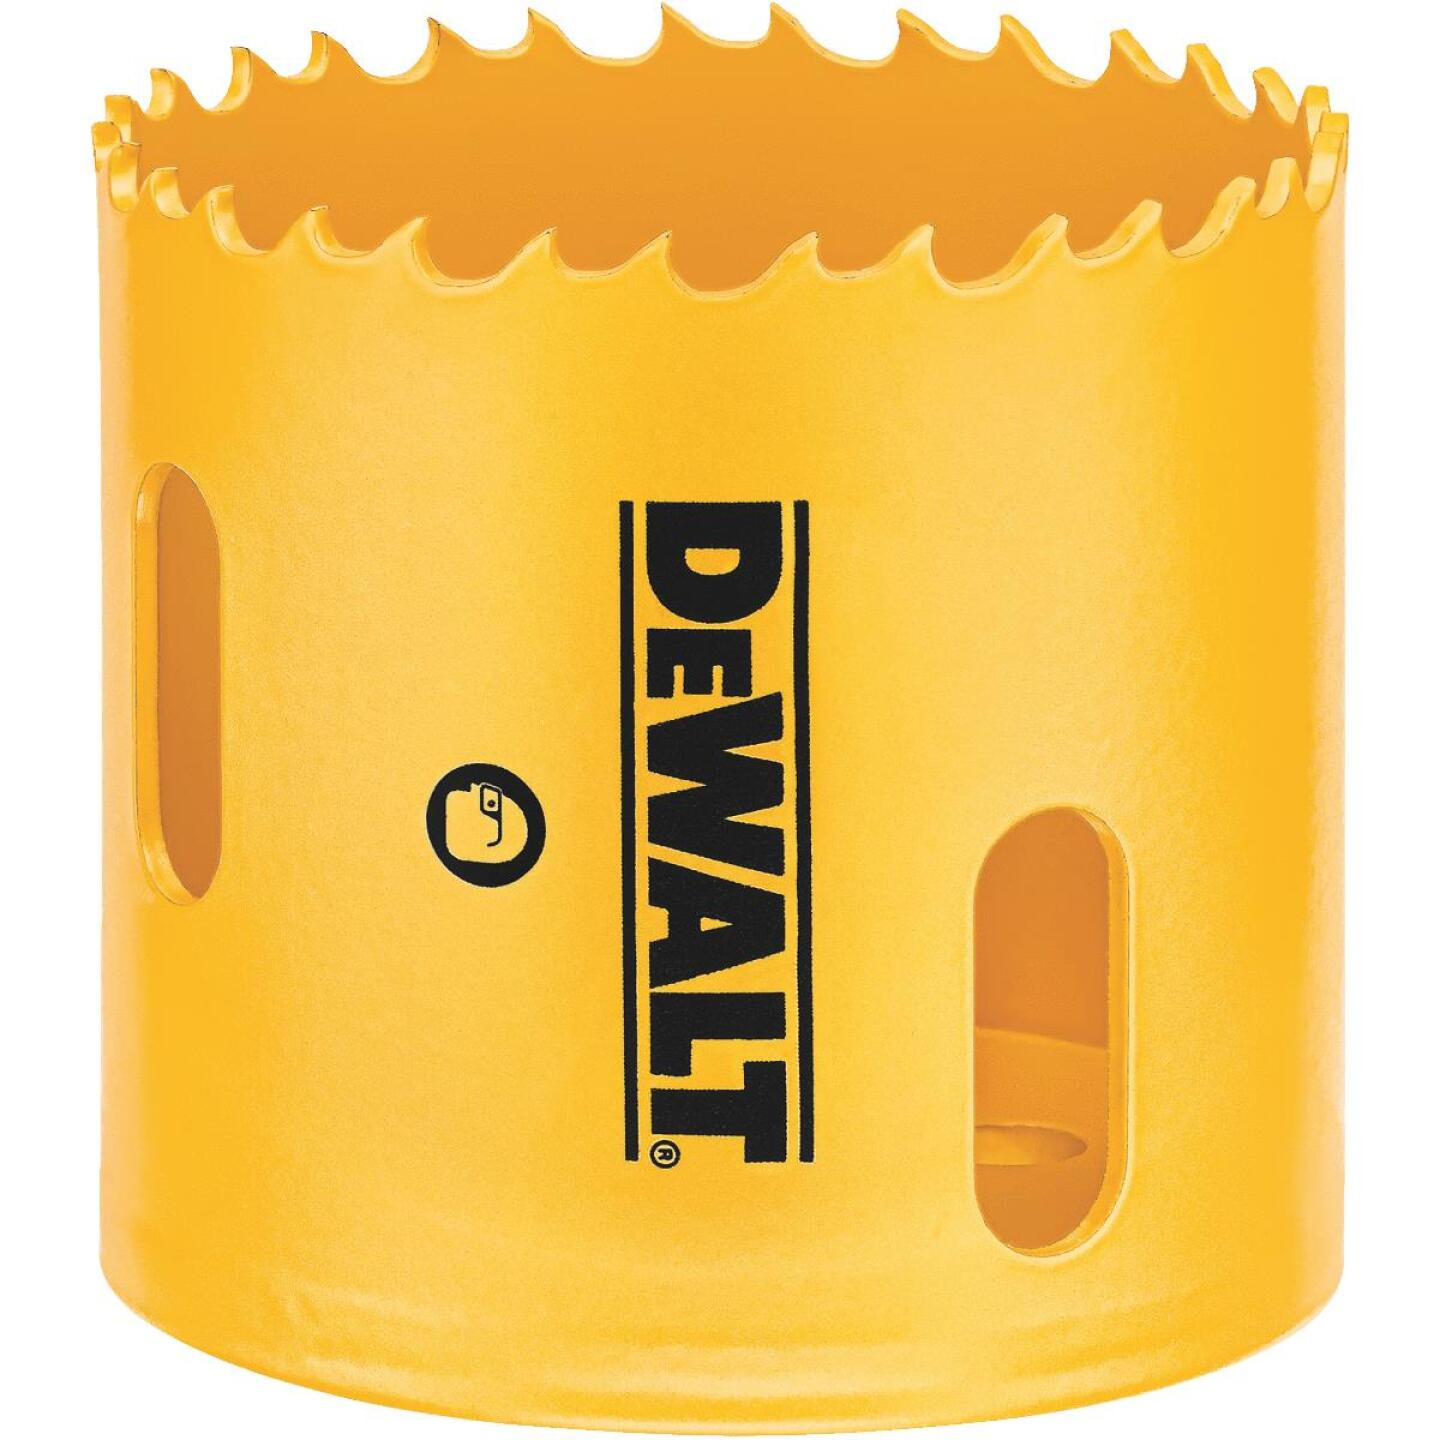 DeWalt 2-1/8 In. Bi-Metal Hole Saw Image 1